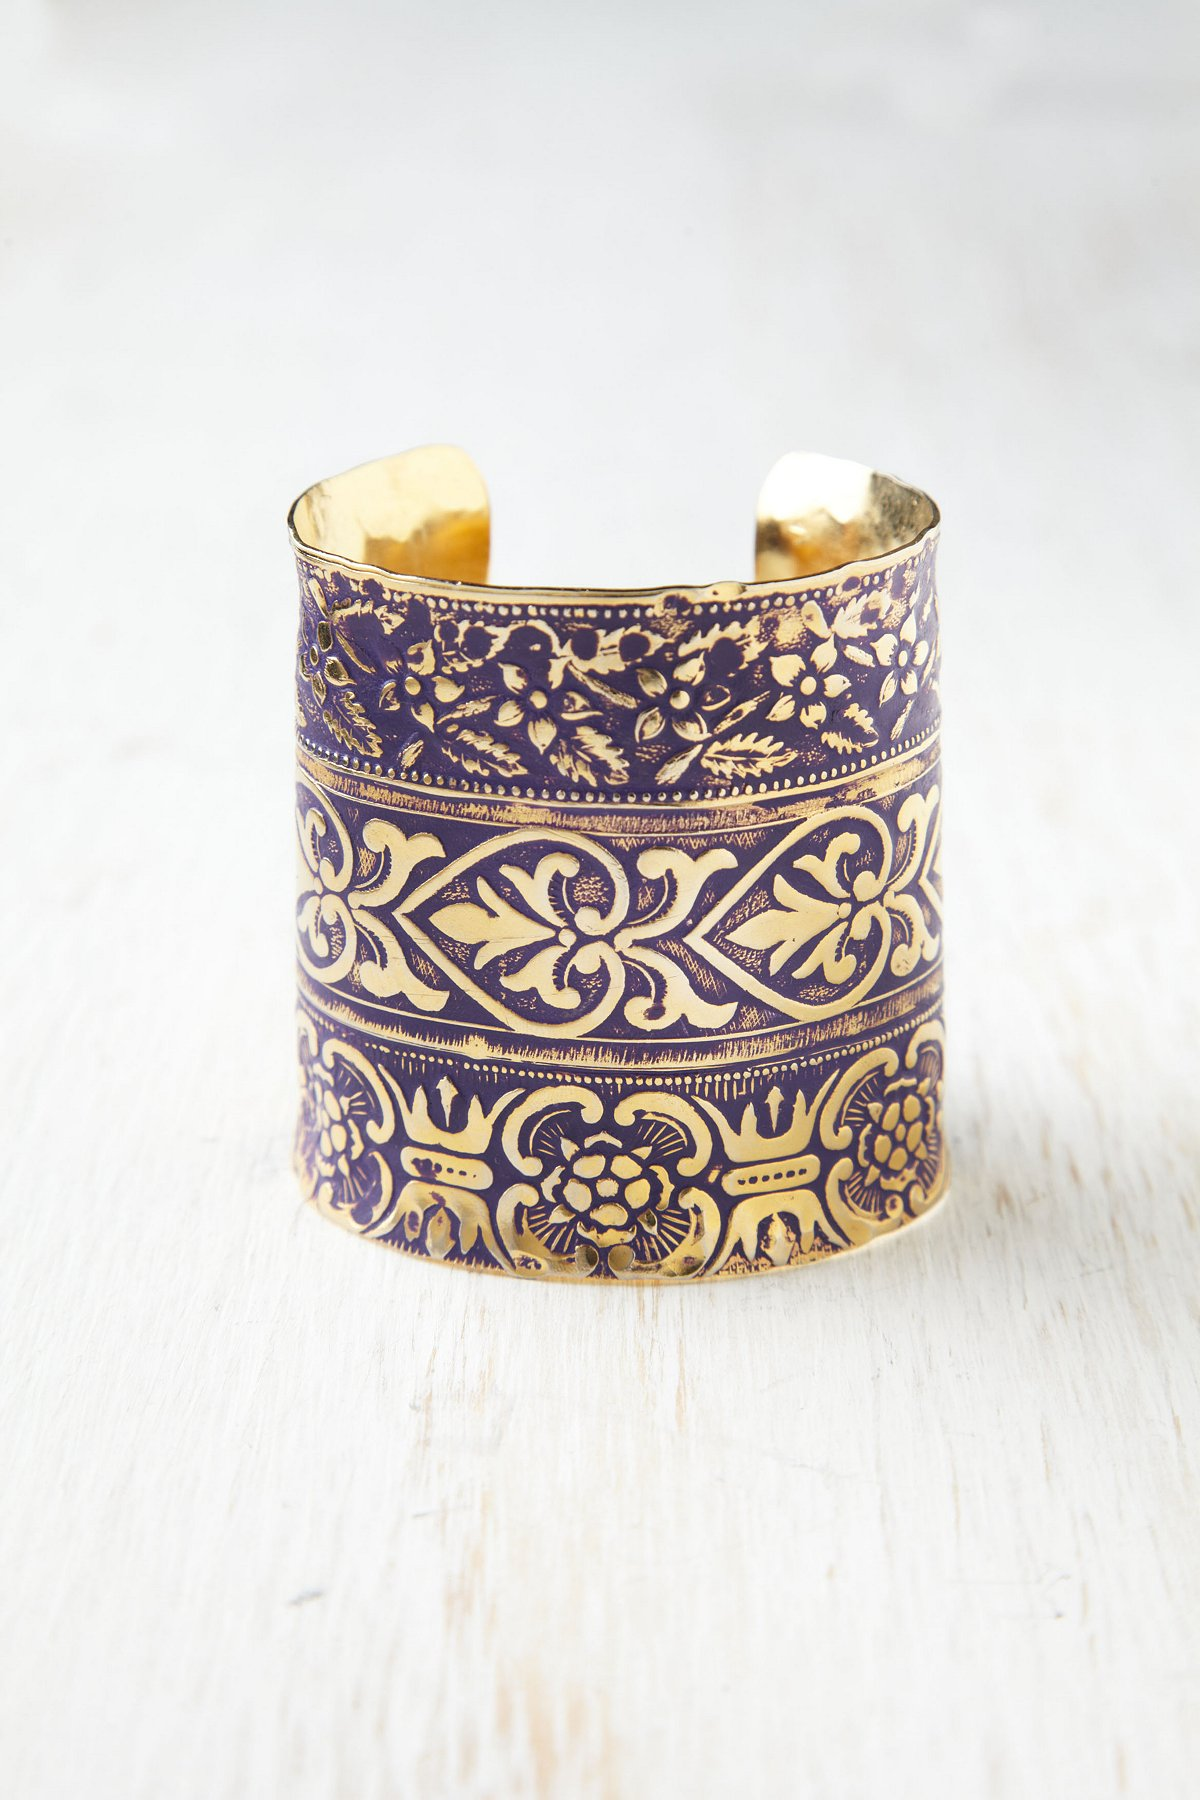 Engraved River Cuff